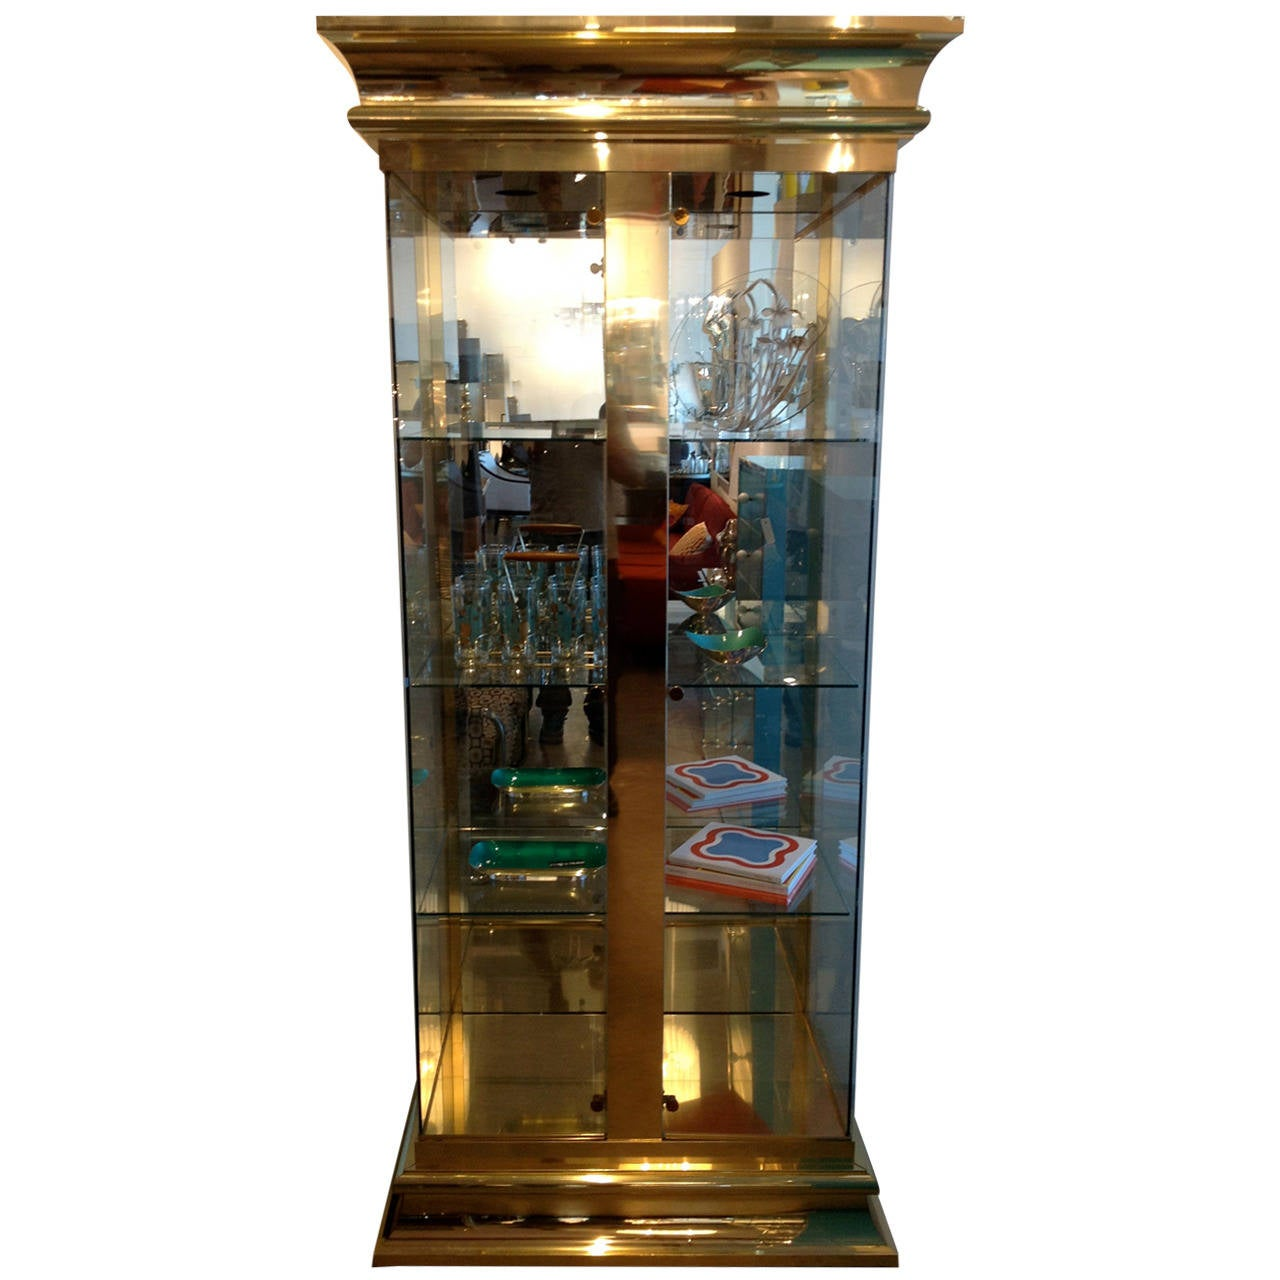 #62411C Mastercraft Brass And Glass Display Cabinet At 1stdibs with 1280x1280 px of Best Glass Display Cabinet Puchong 12801280 image @ avoidforclosure.info